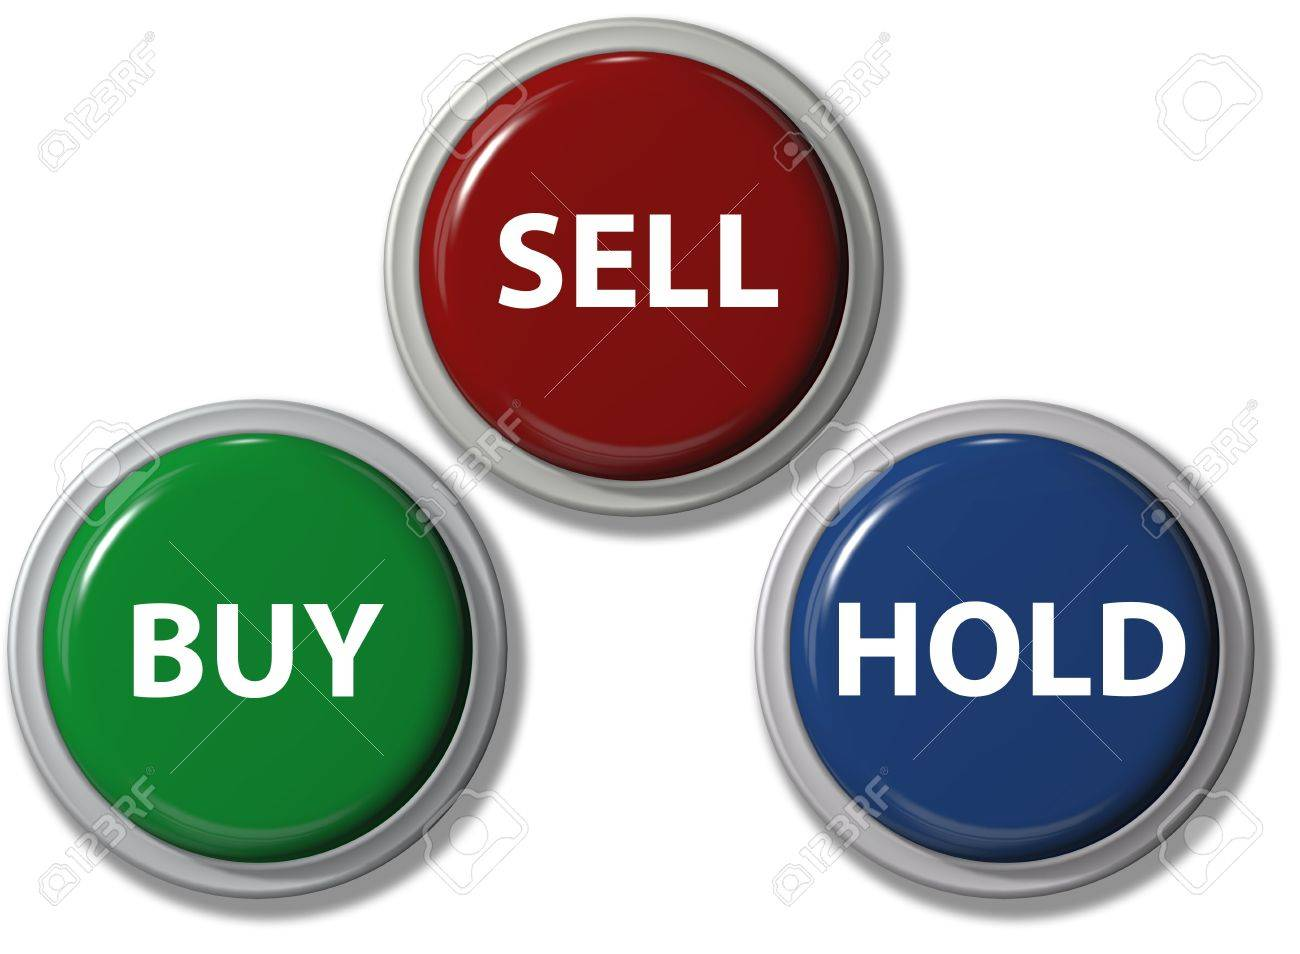 Click on BUY SELL HOLD financial buttons stock investment icons Stock Photo - 7897963